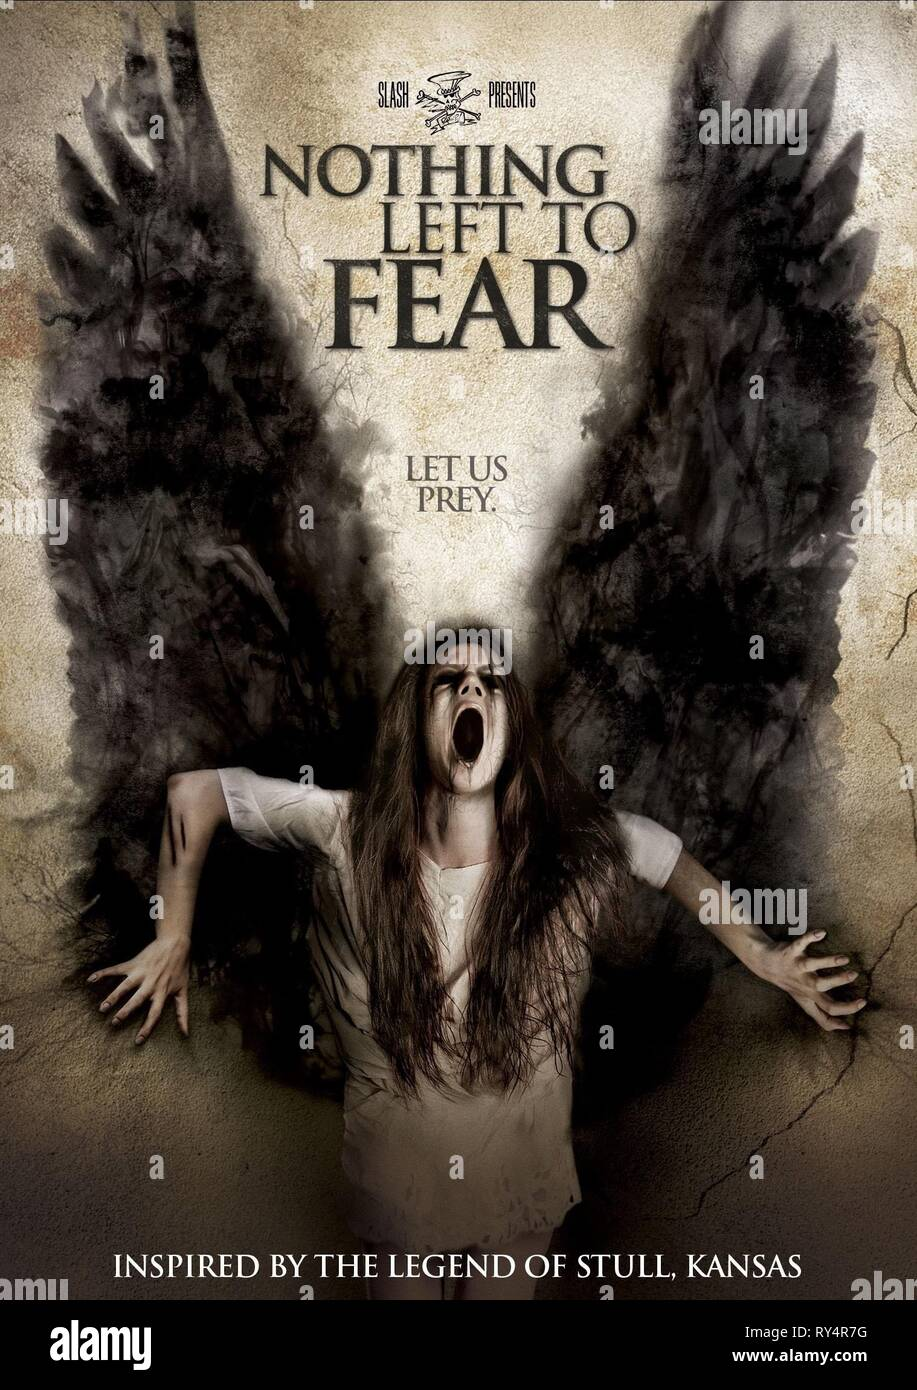 MOVIE POSTER, NOTHING LEFT TO FEAR, 2013 - Stock Image